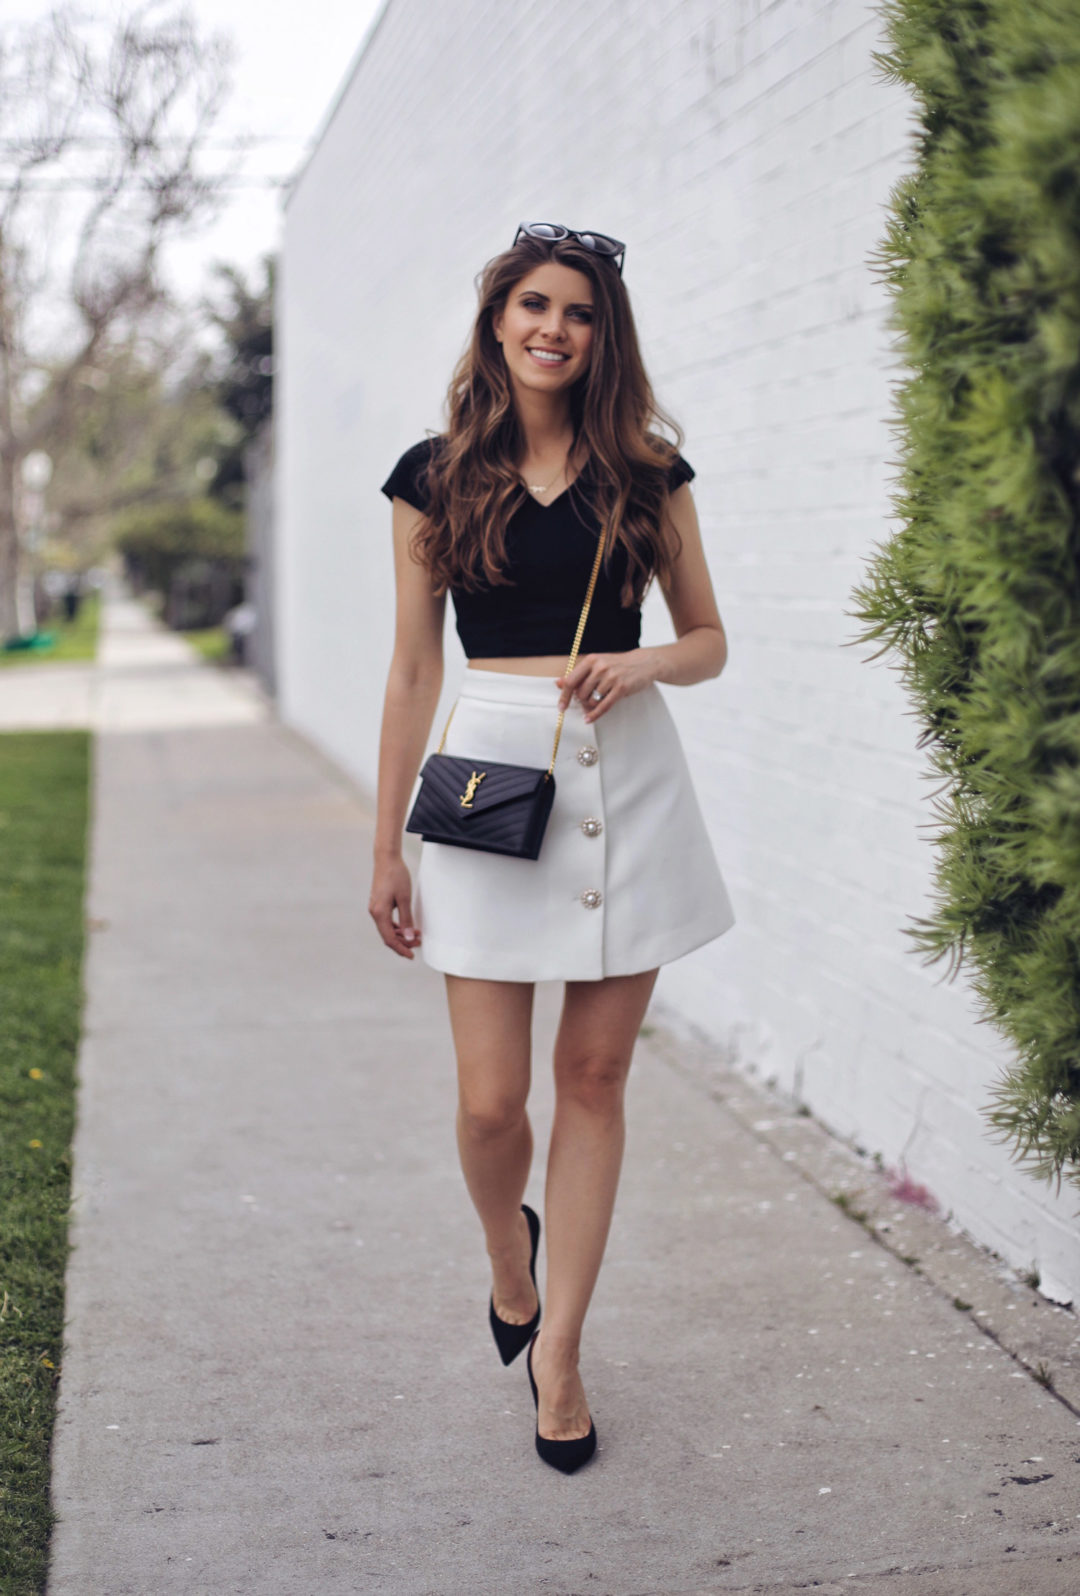 Fashion and lifestyle blogger Adelina Perrin of The Charming Olive wearing Chicwish Top, Chicwish skirt, Saint Laurent bag, Cesare Pacciotti shoes